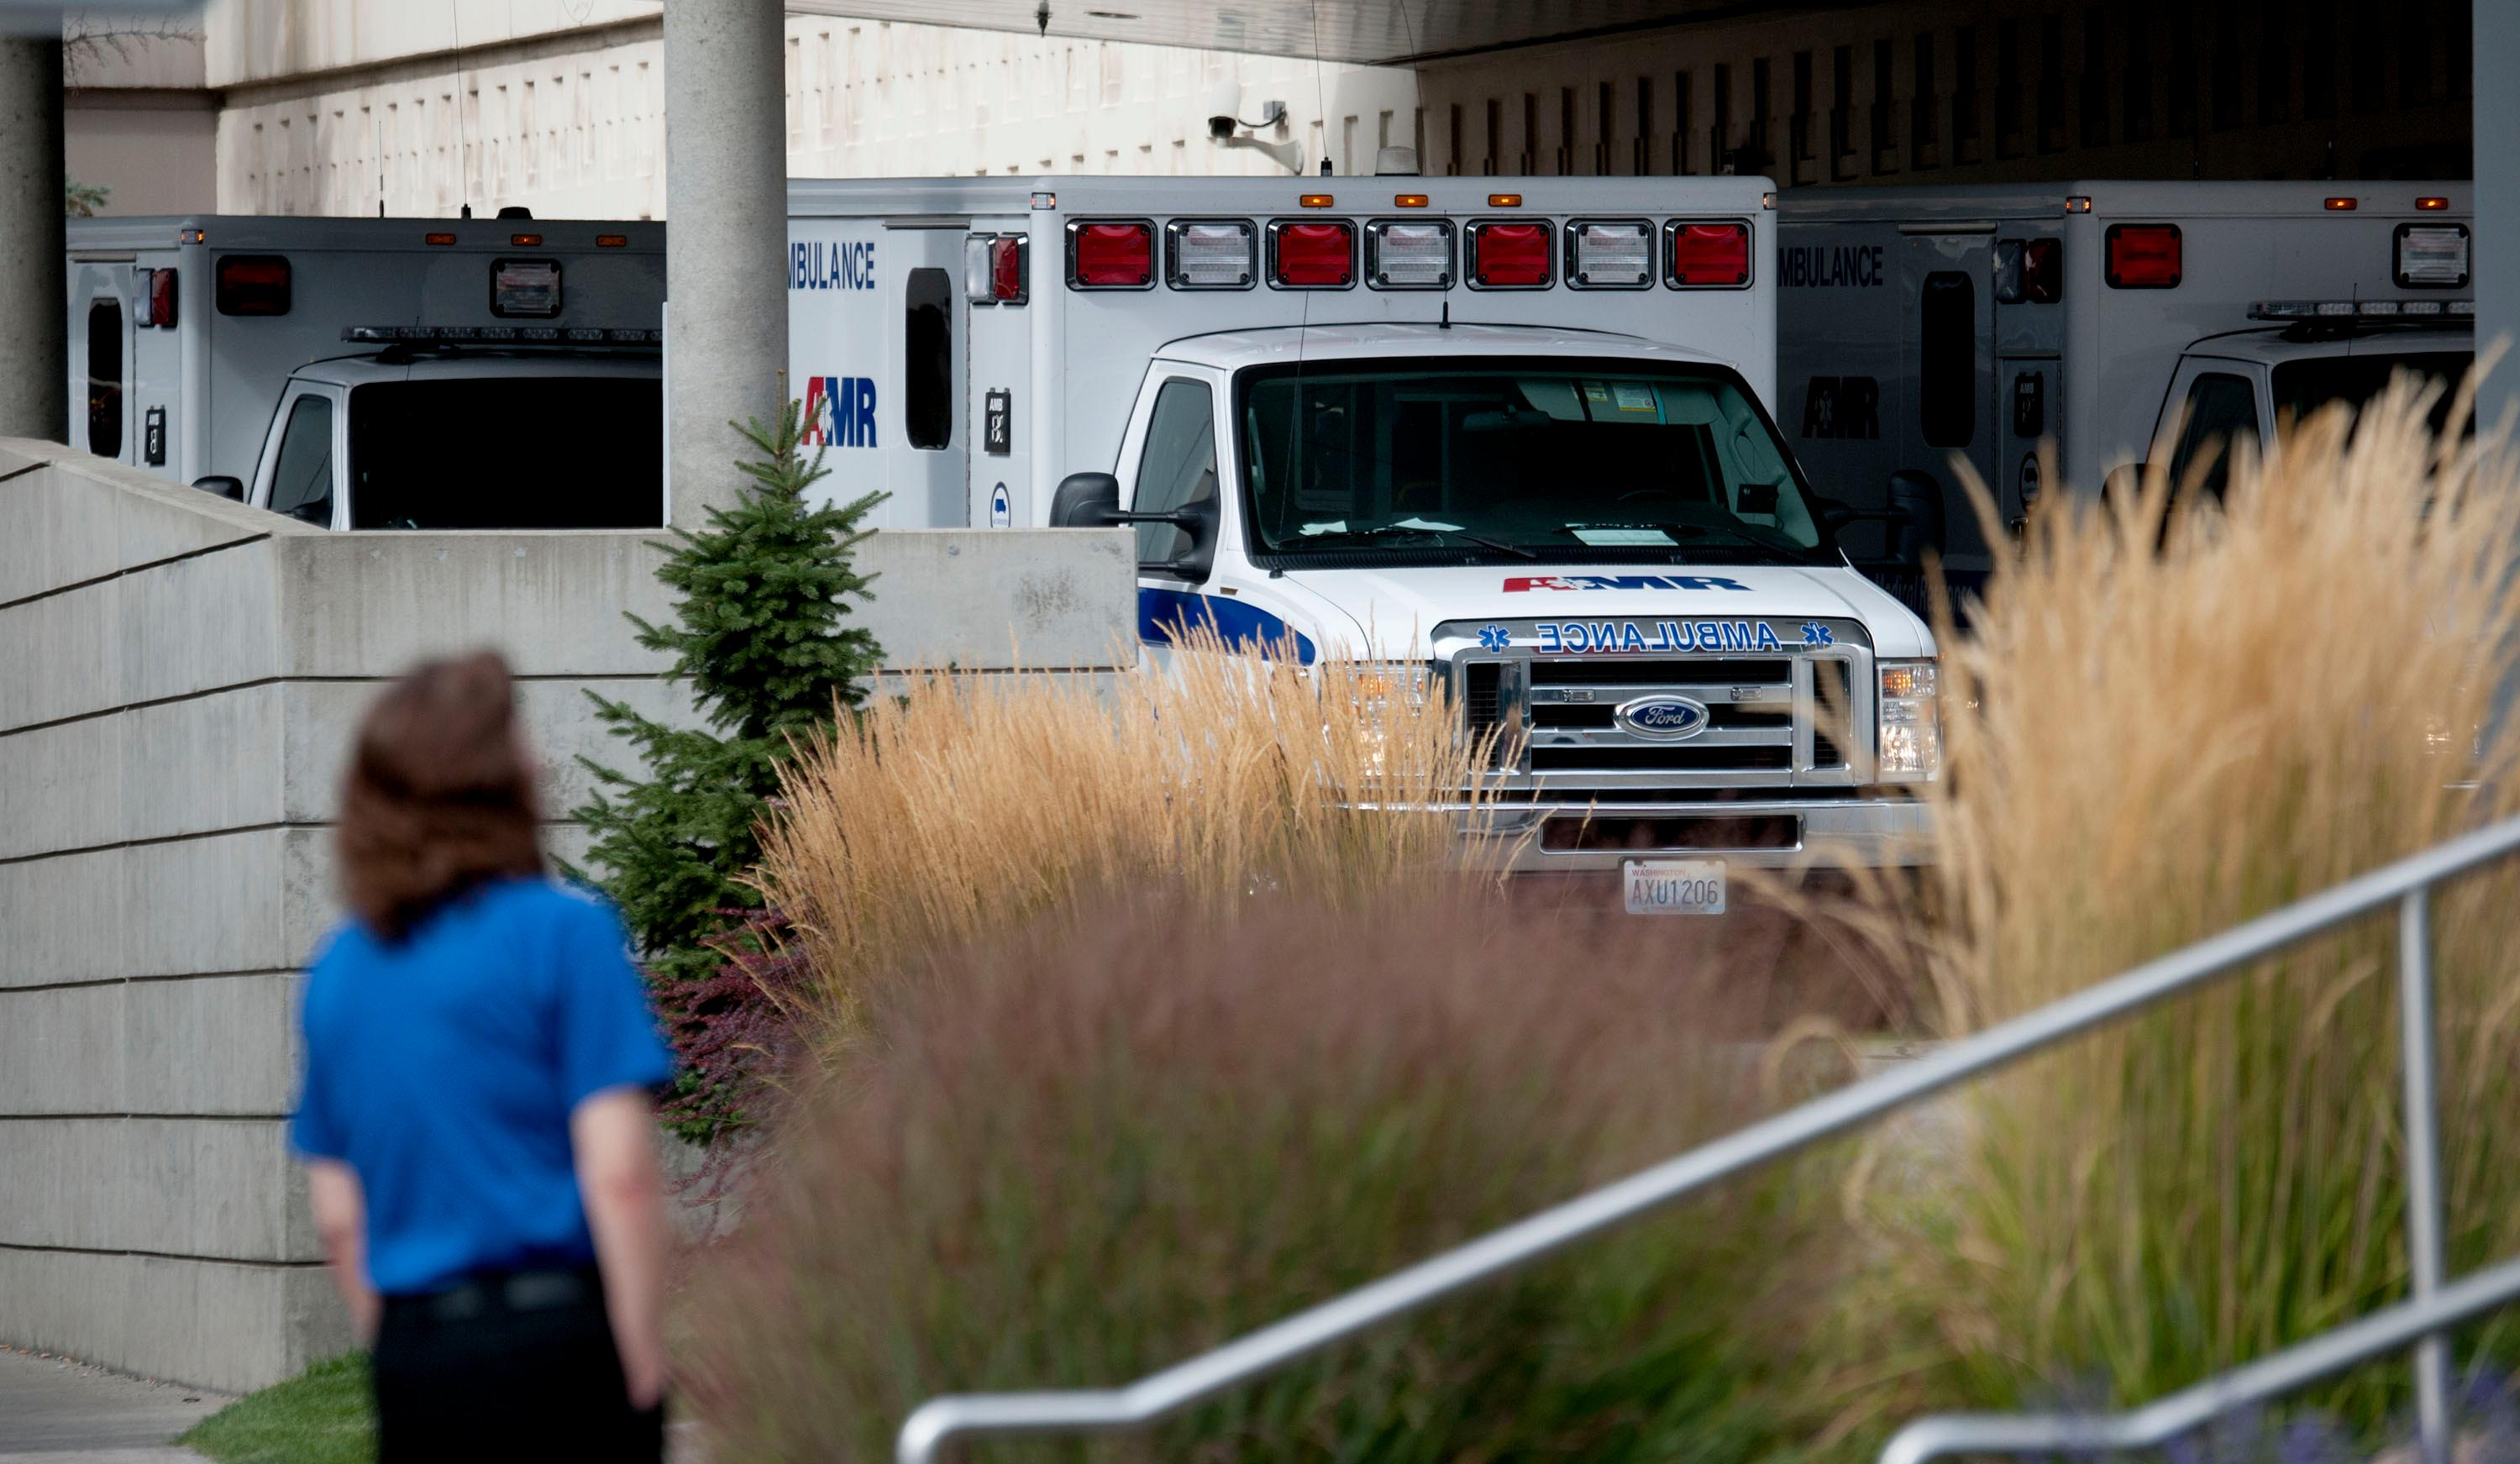 Ambulances line up in the emergency area of Sacred Heart Hospital following reports of a shooting at Freeman High School on Wednesday, Sept. 13, 2017 in Rockford, Wash.  A shooter opened fire at a the high school, south of Spokane, killing one student, injuring three others.  The injured victims were taken to a hospital and expected to survive. Authorities say the suspect was in custody.  (Kathy Plonka/The Spokesman-Review via AP)